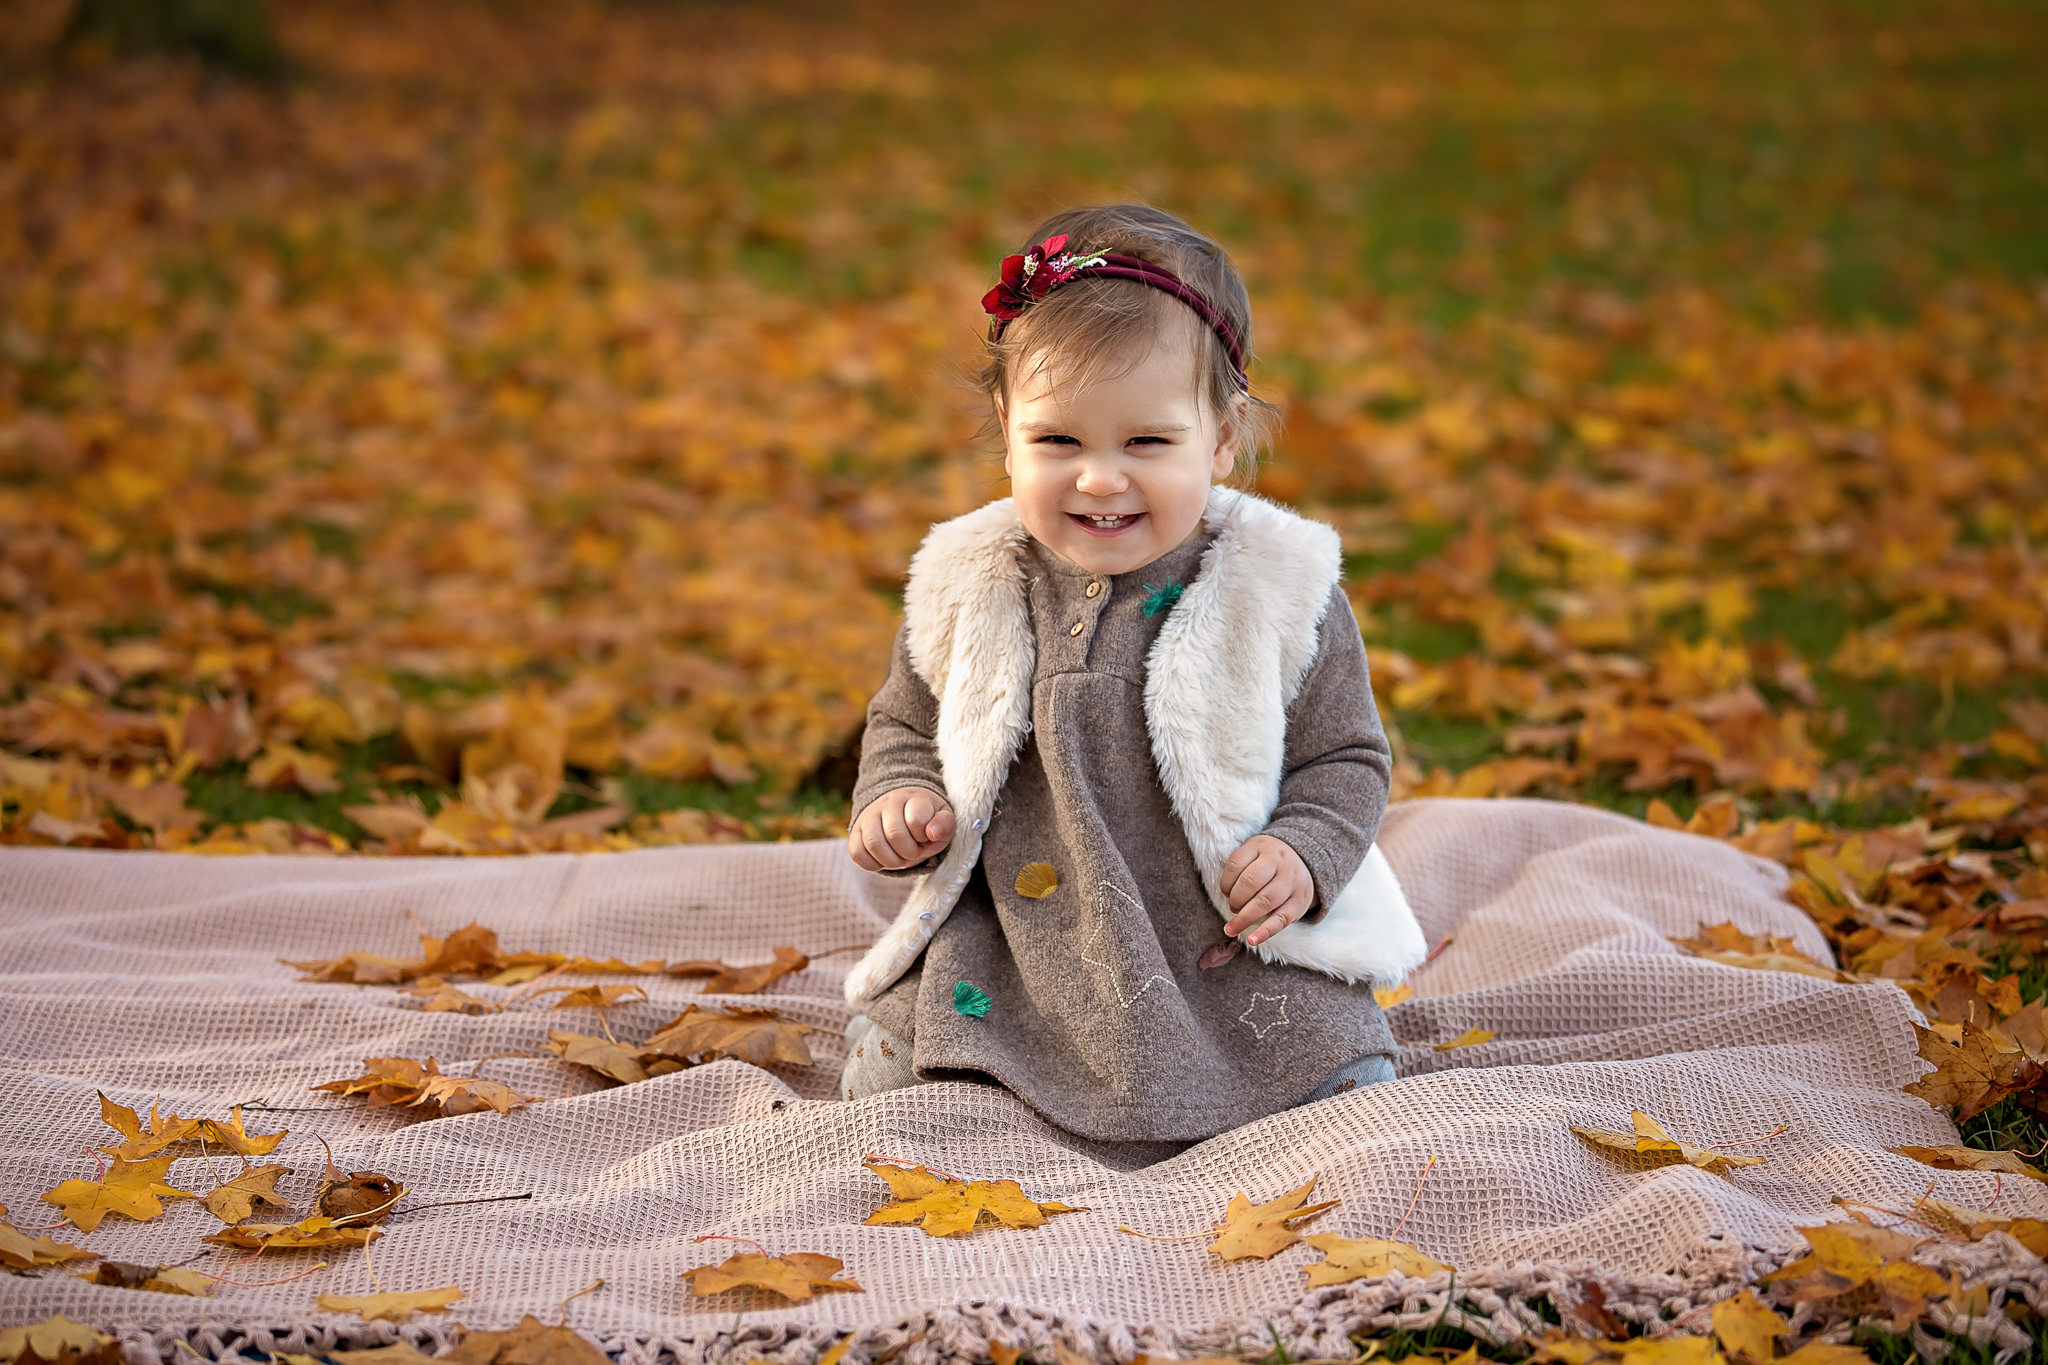 Baby milestone photography Leeds, York, Bradford, Harrogate: cute baby girl's first birthday portrait session. Autumn outdoor baby photo shoot in a park in Leeds, Yorkshire